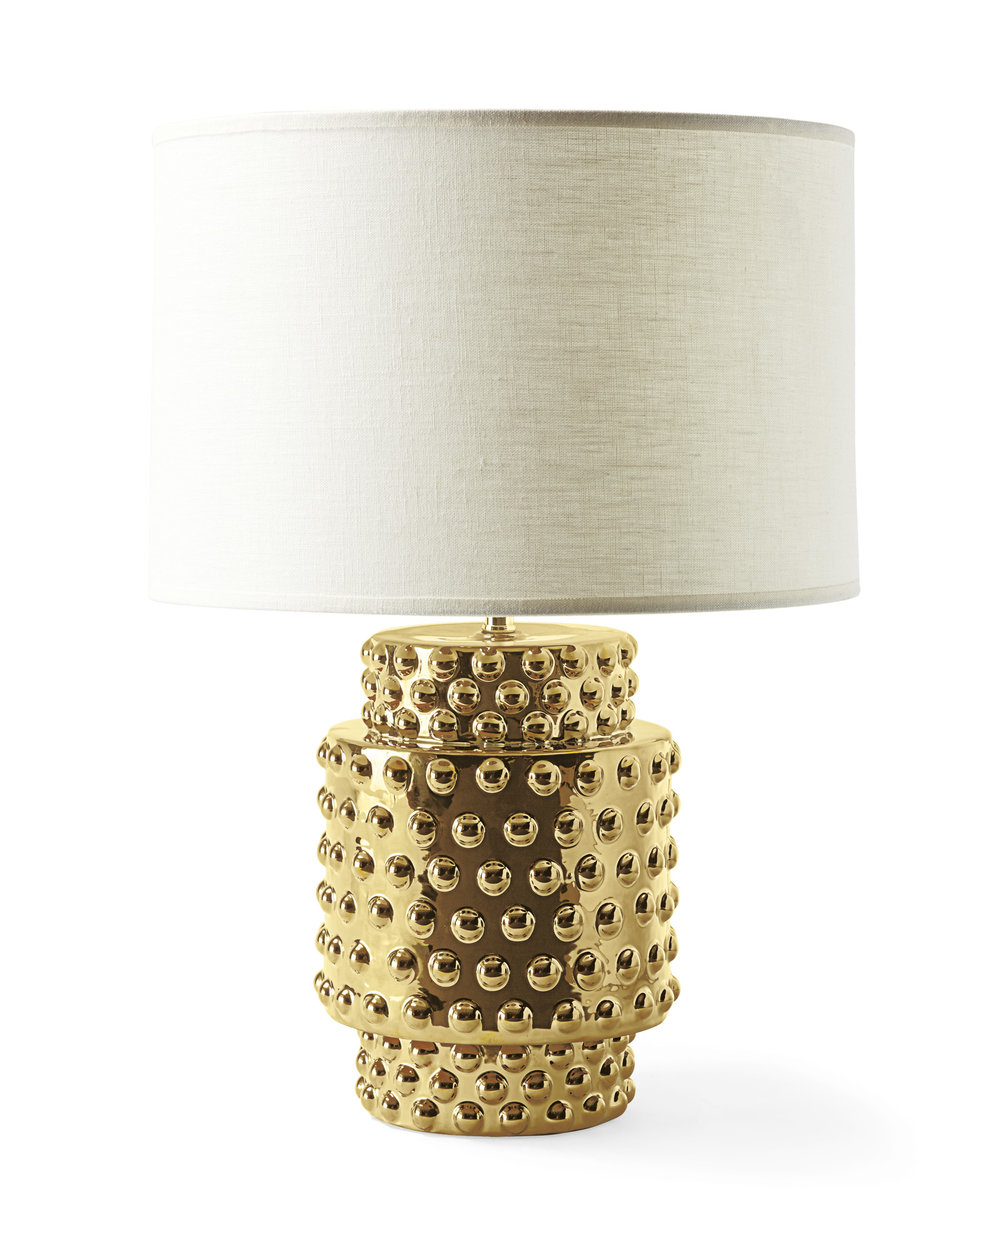 tinsley table lamp / $339